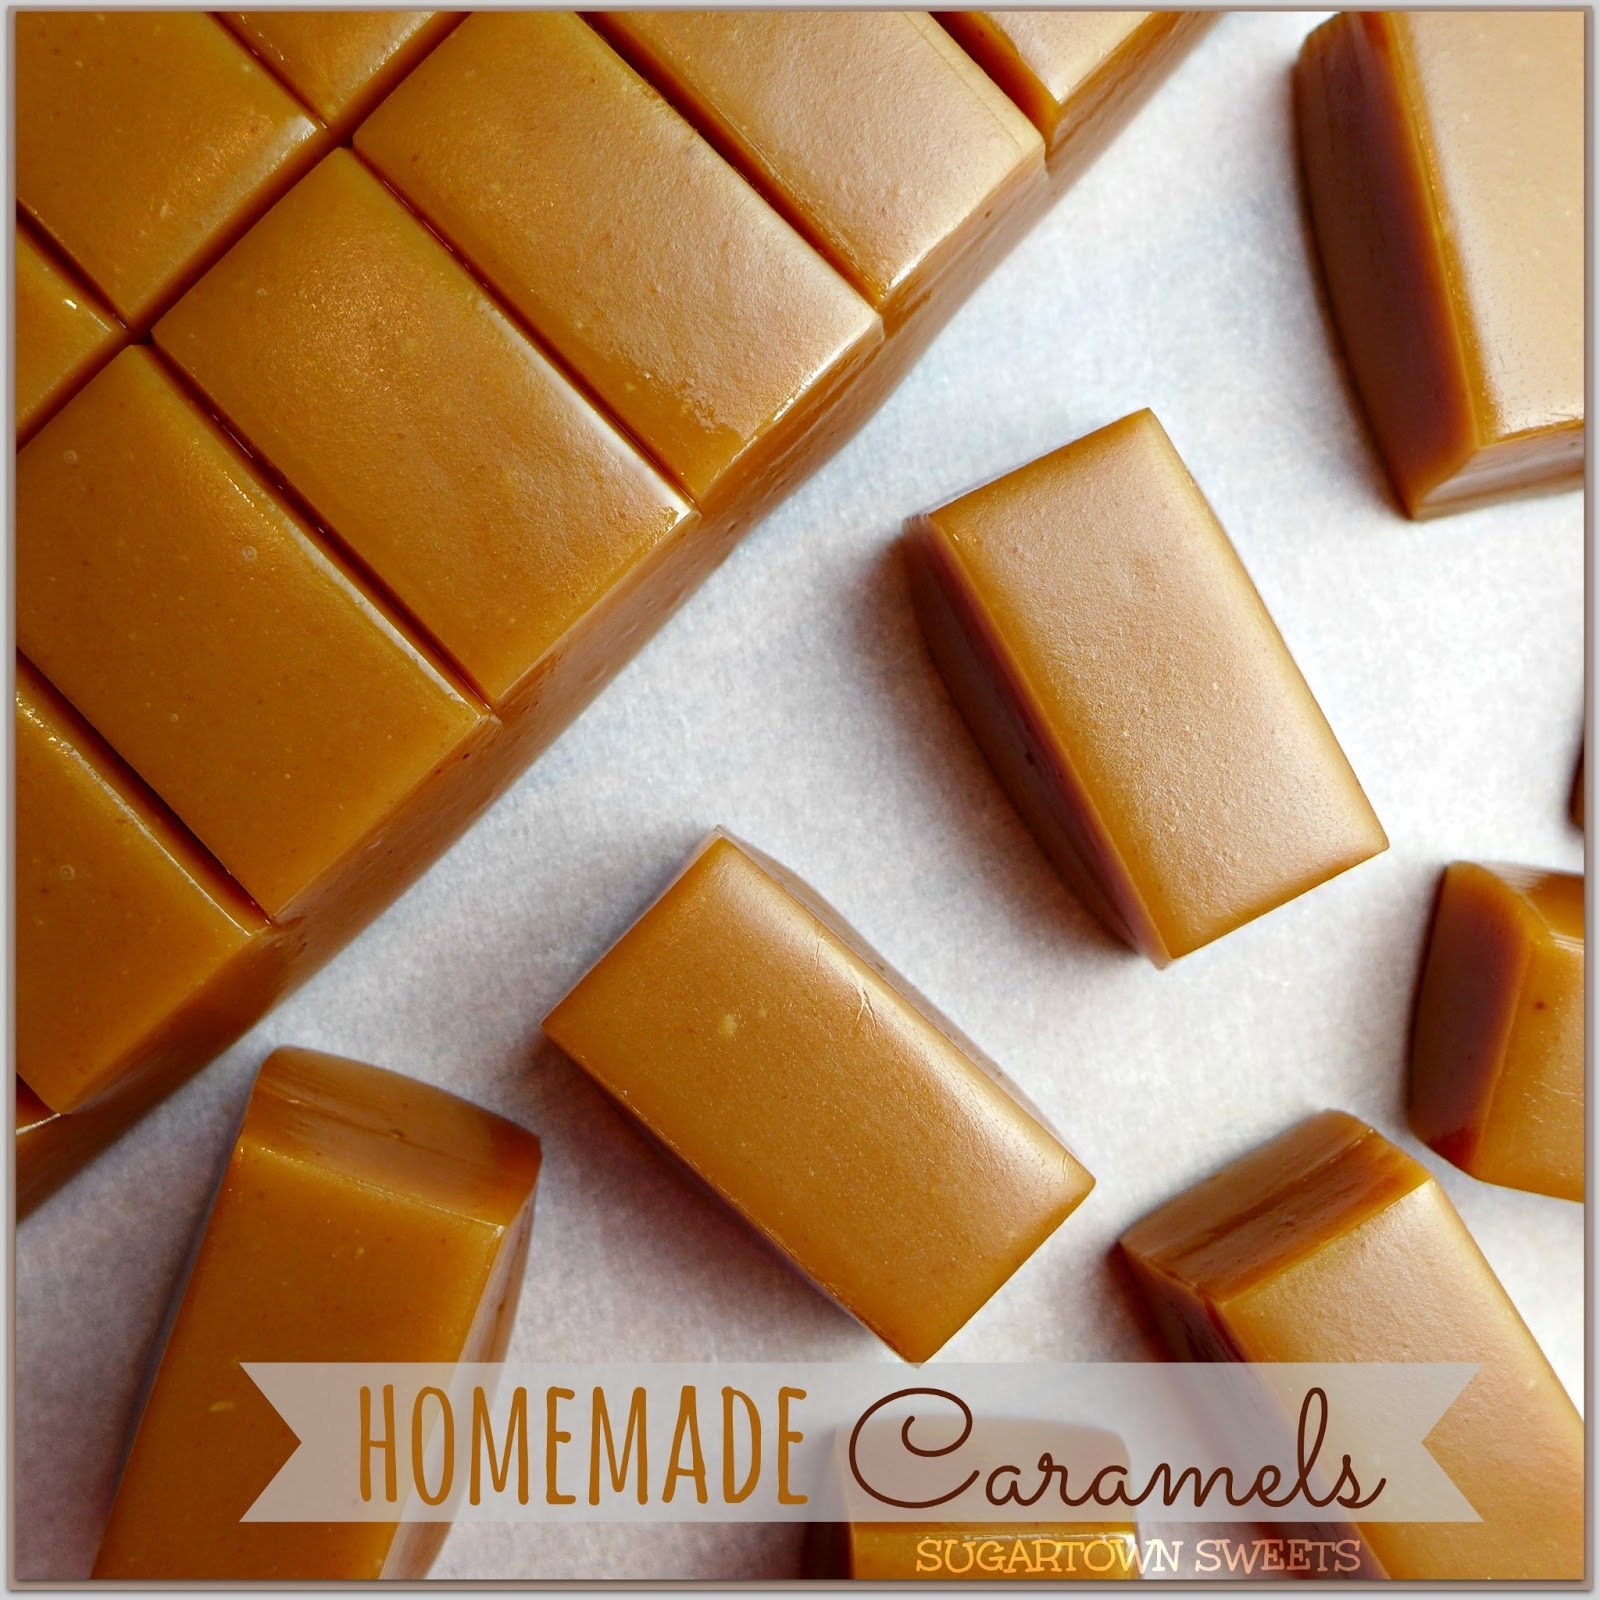 Sugartown Sweets: Homemade Caramels